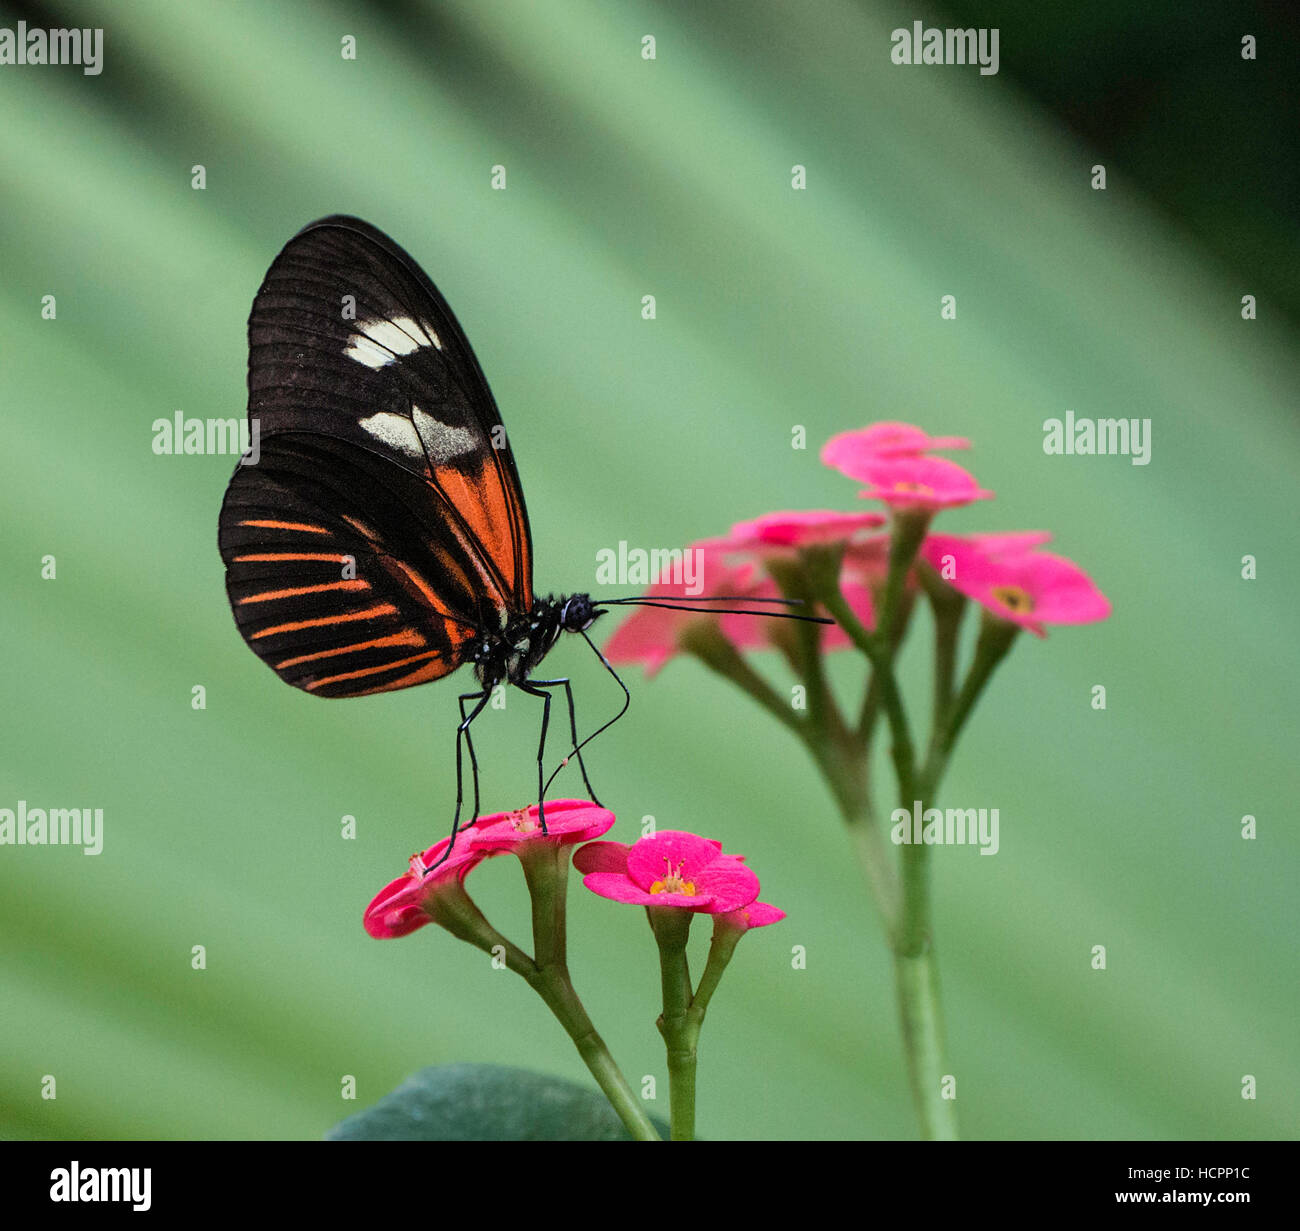 Red Postman Mimic (Heliconius melpomene aglaope) feeding on pink flower - Stock Image